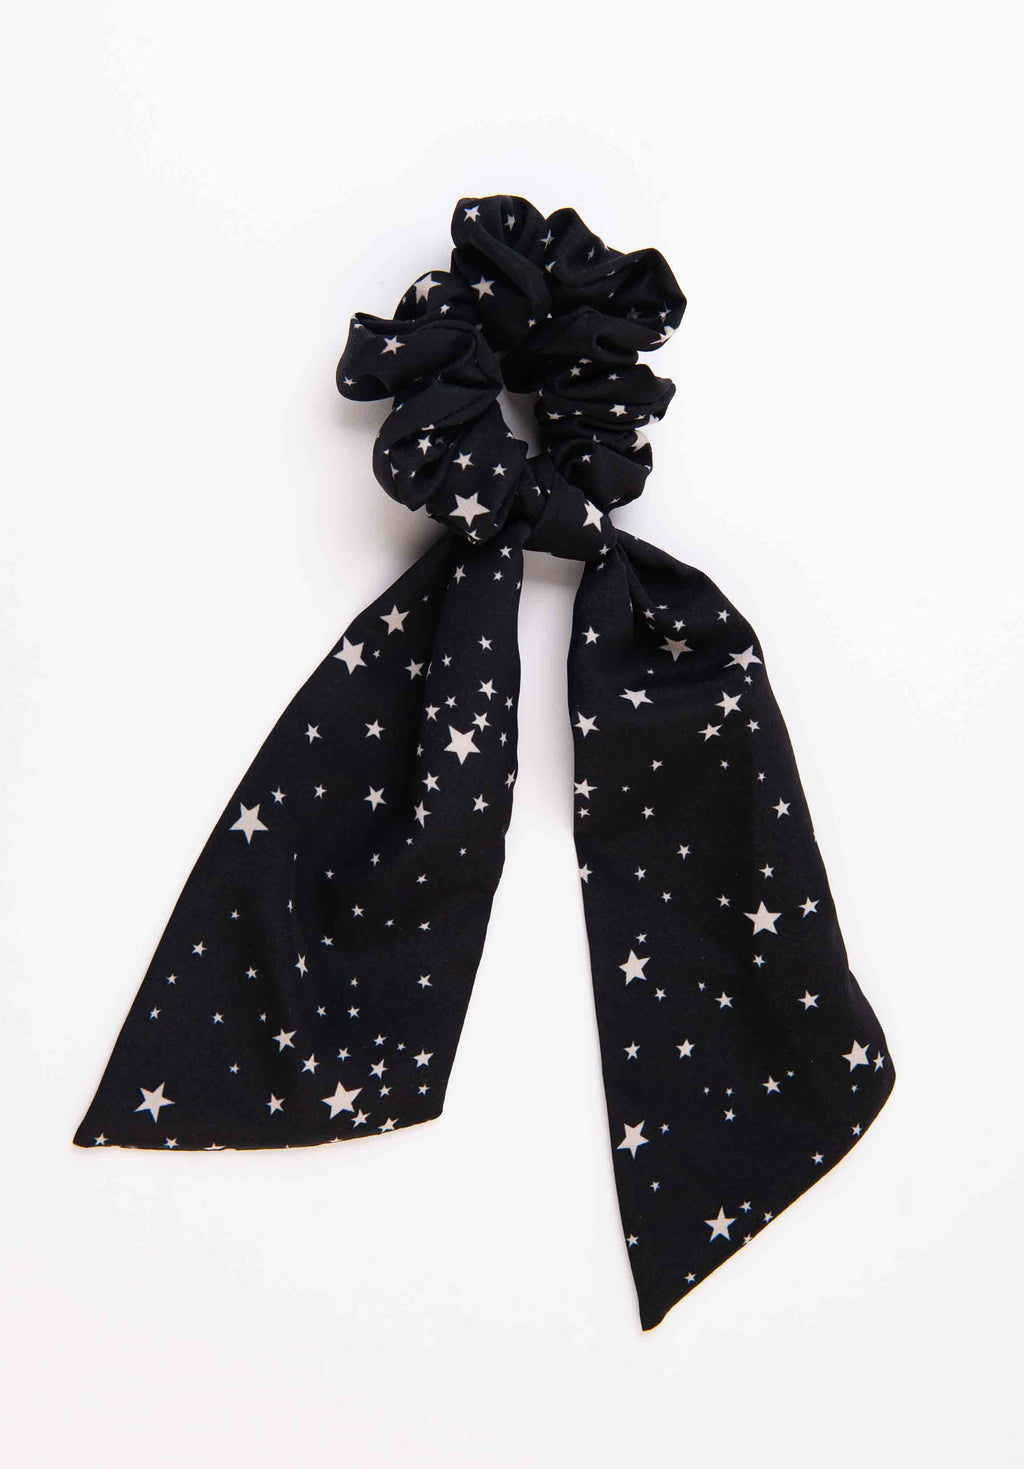 SCARF DETAIL SCRUNCHIE | STARBURST